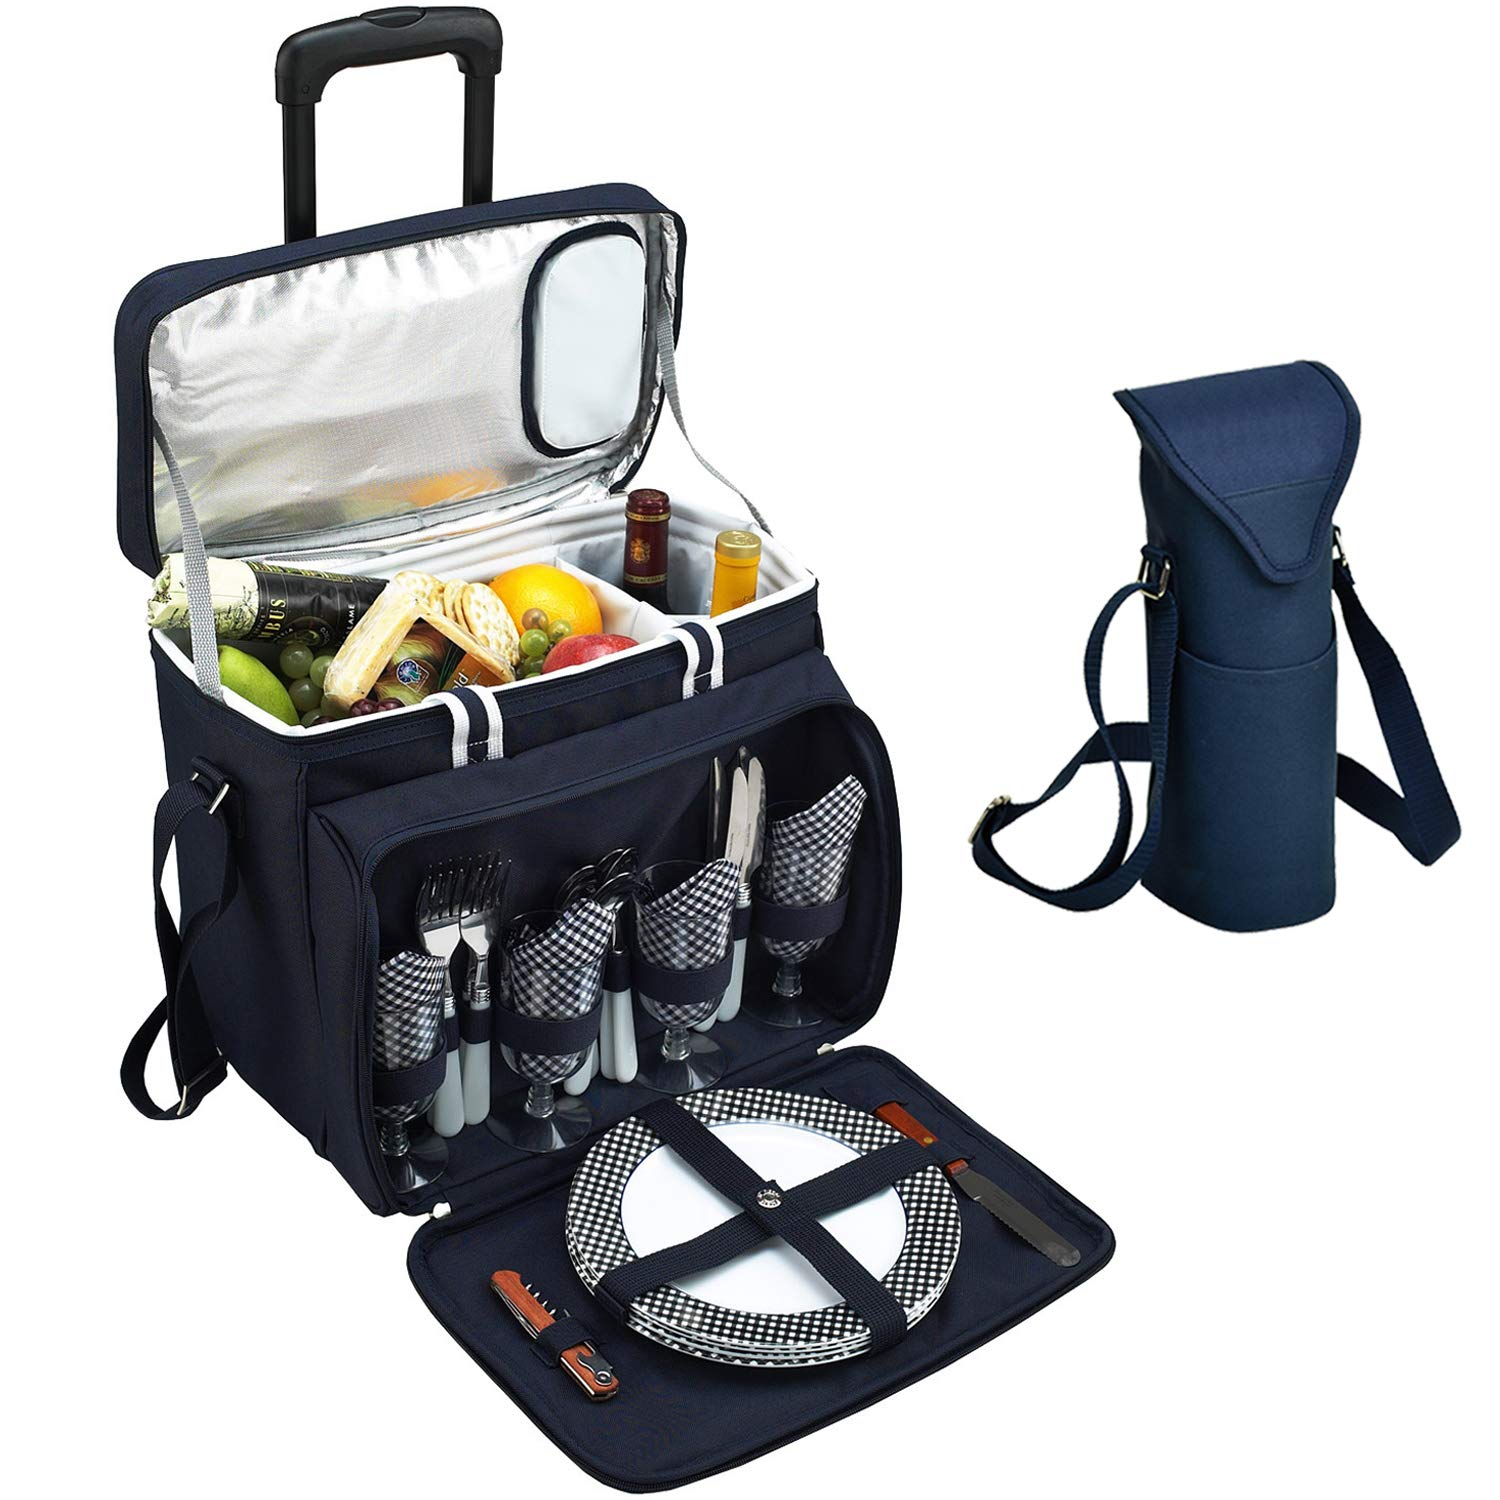 Picnic at Ascot Original Equipped Cooler on Wheels for 4 - Extra Wine Tote - Designed and Assembled in California - Navy by Picnic at Ascot